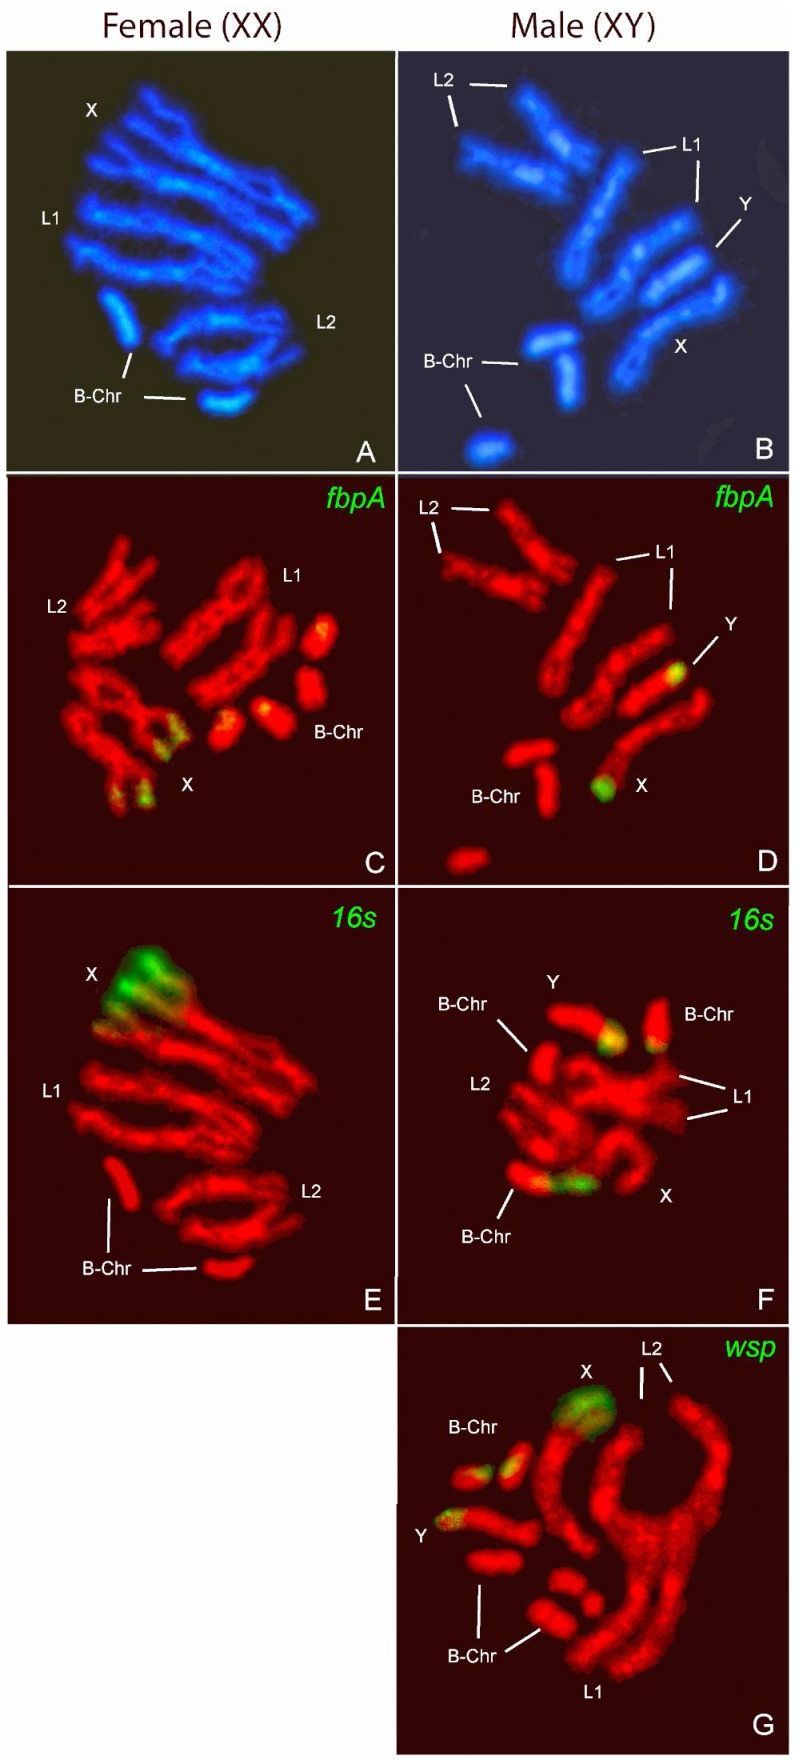 Fluorescent in situ hybridisation (FISH) on Gmm mitotic chromosomes. The chromosomes are numbered as described by Willhoeft (1997) [70] . A–B. Banding pattern of (DAPI)-stained chromosome spreads (A–B). The DAPI positive regions indicate the heterochromatic patterns. B-chromosomes vary in number. FISH on female and male chromosomes with fbpA probe (C–D), 16S rDNA probe (E–F), and wsp probe on chromosomes from a male individual (G).